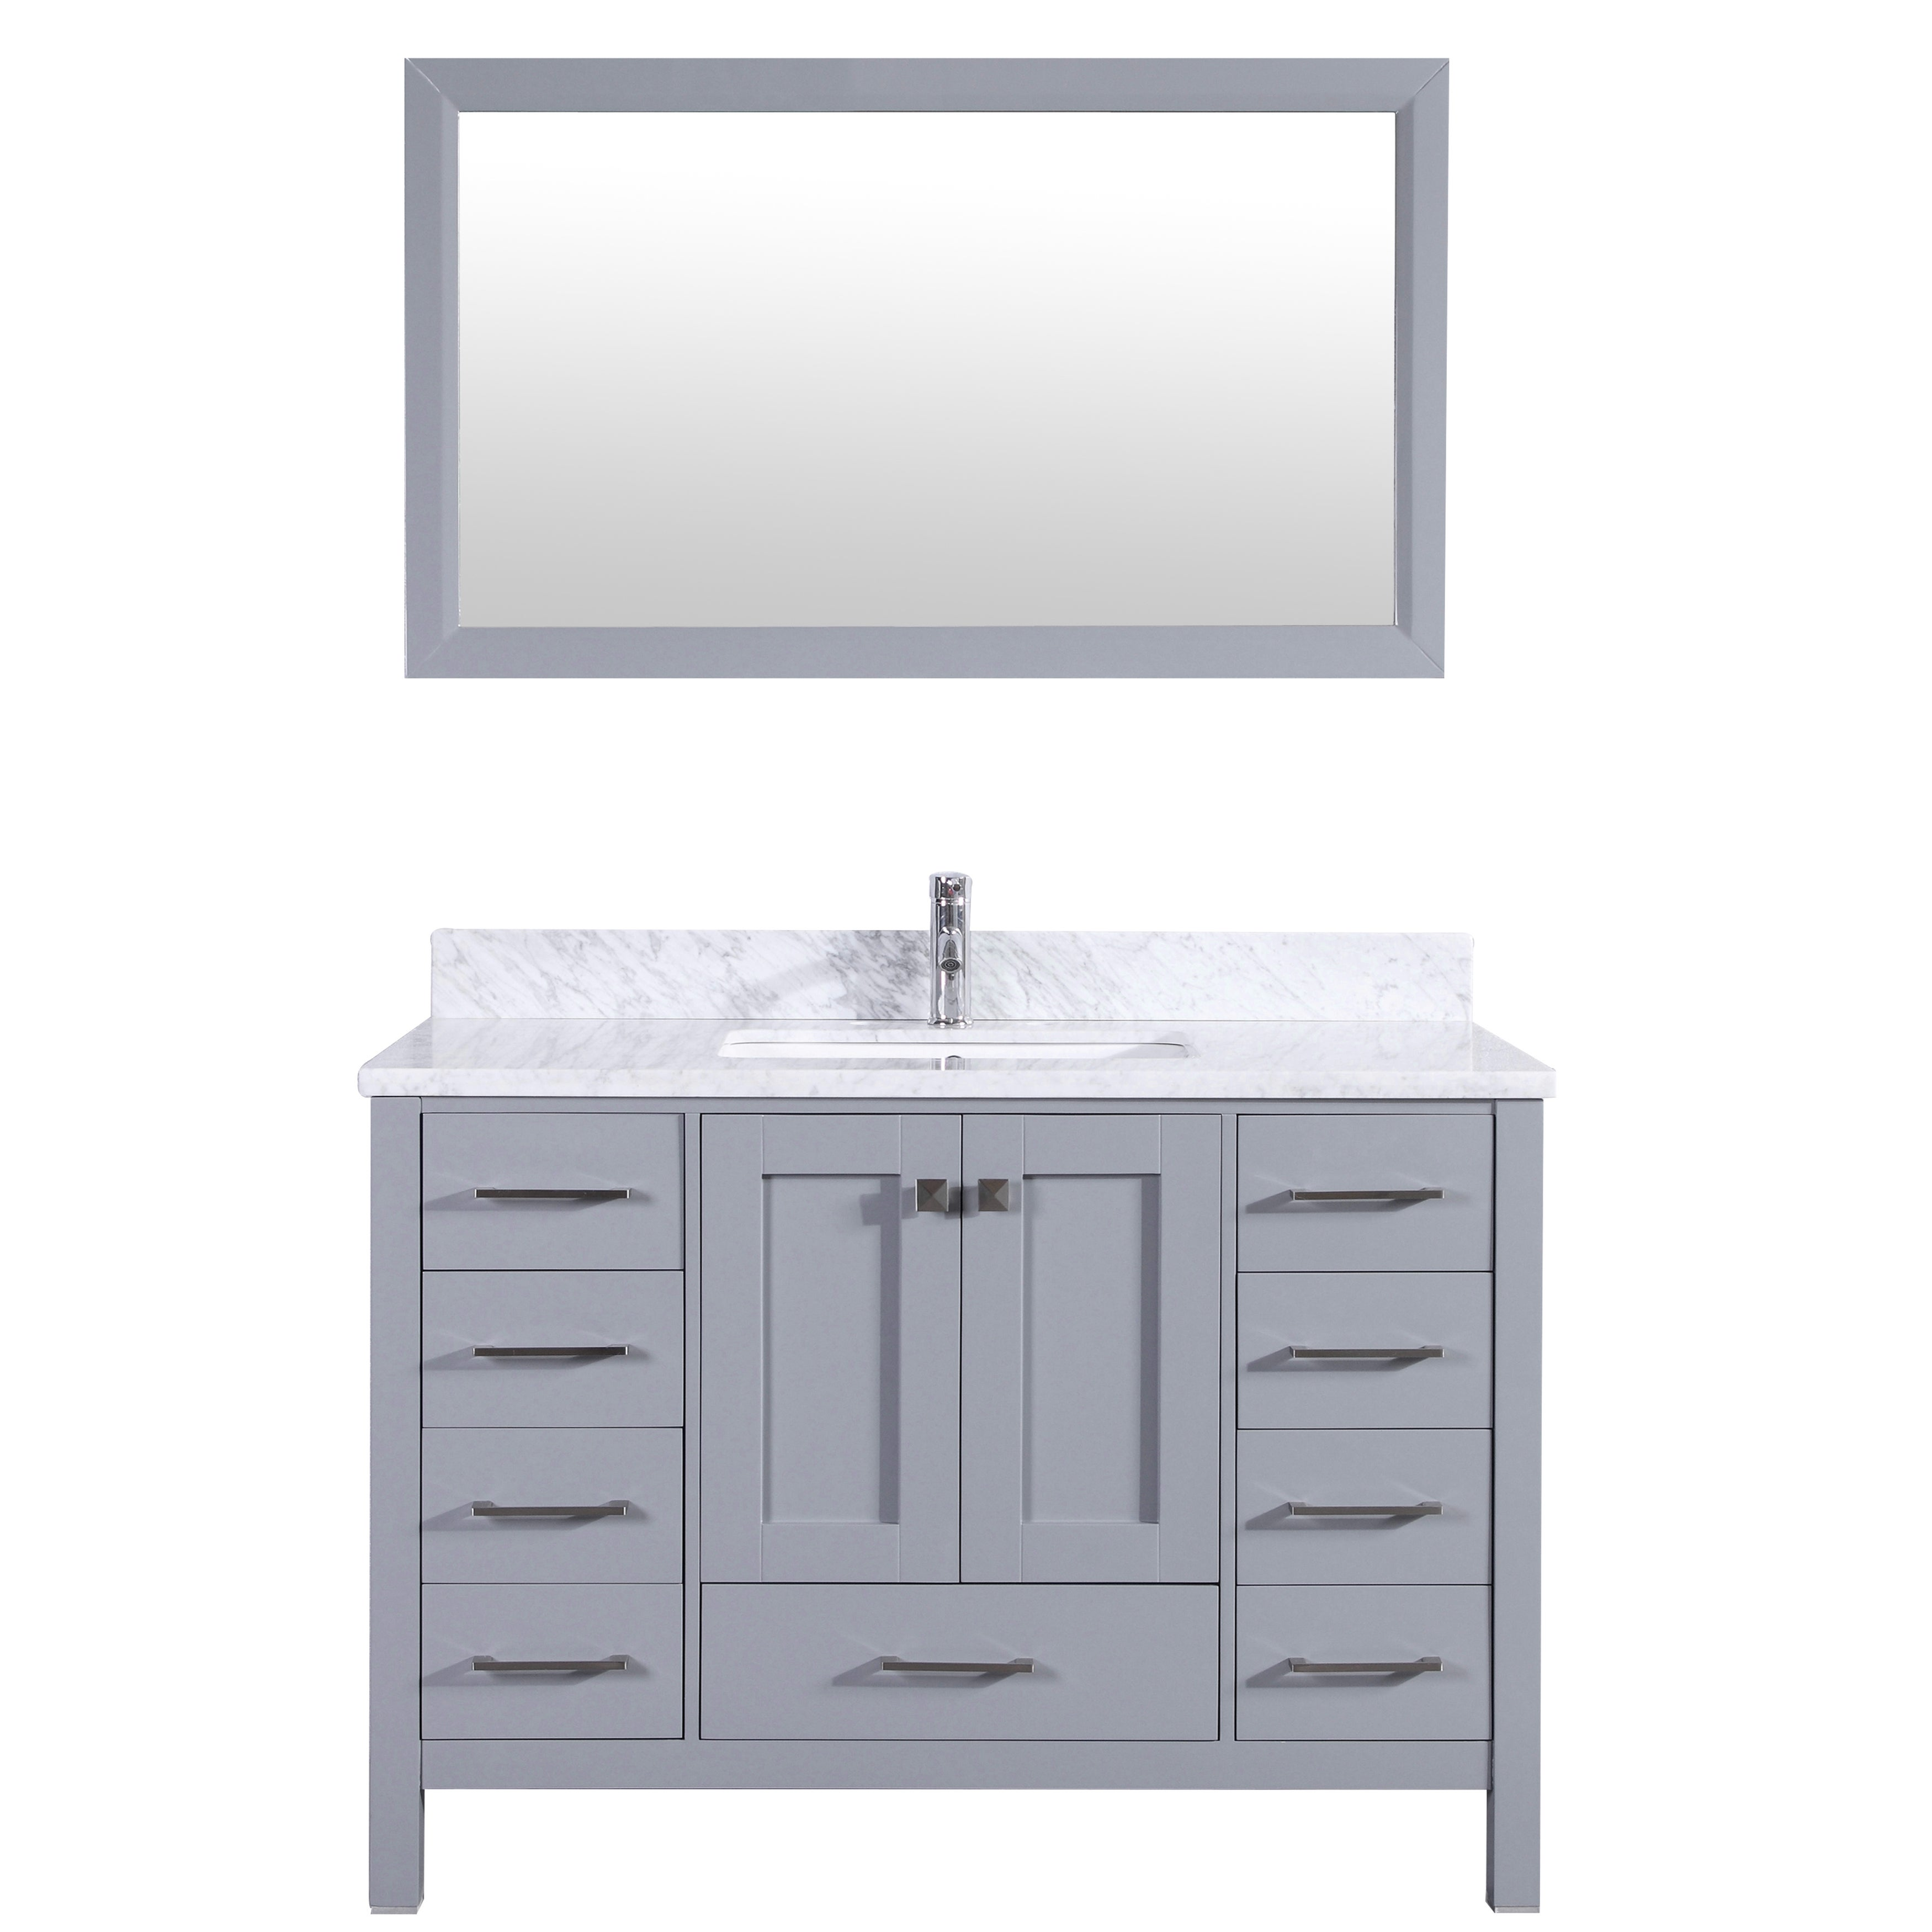 sink wood products inch with white in under carrara marble vanity bathroom mount cabinet carrera countertop solid grey amp round